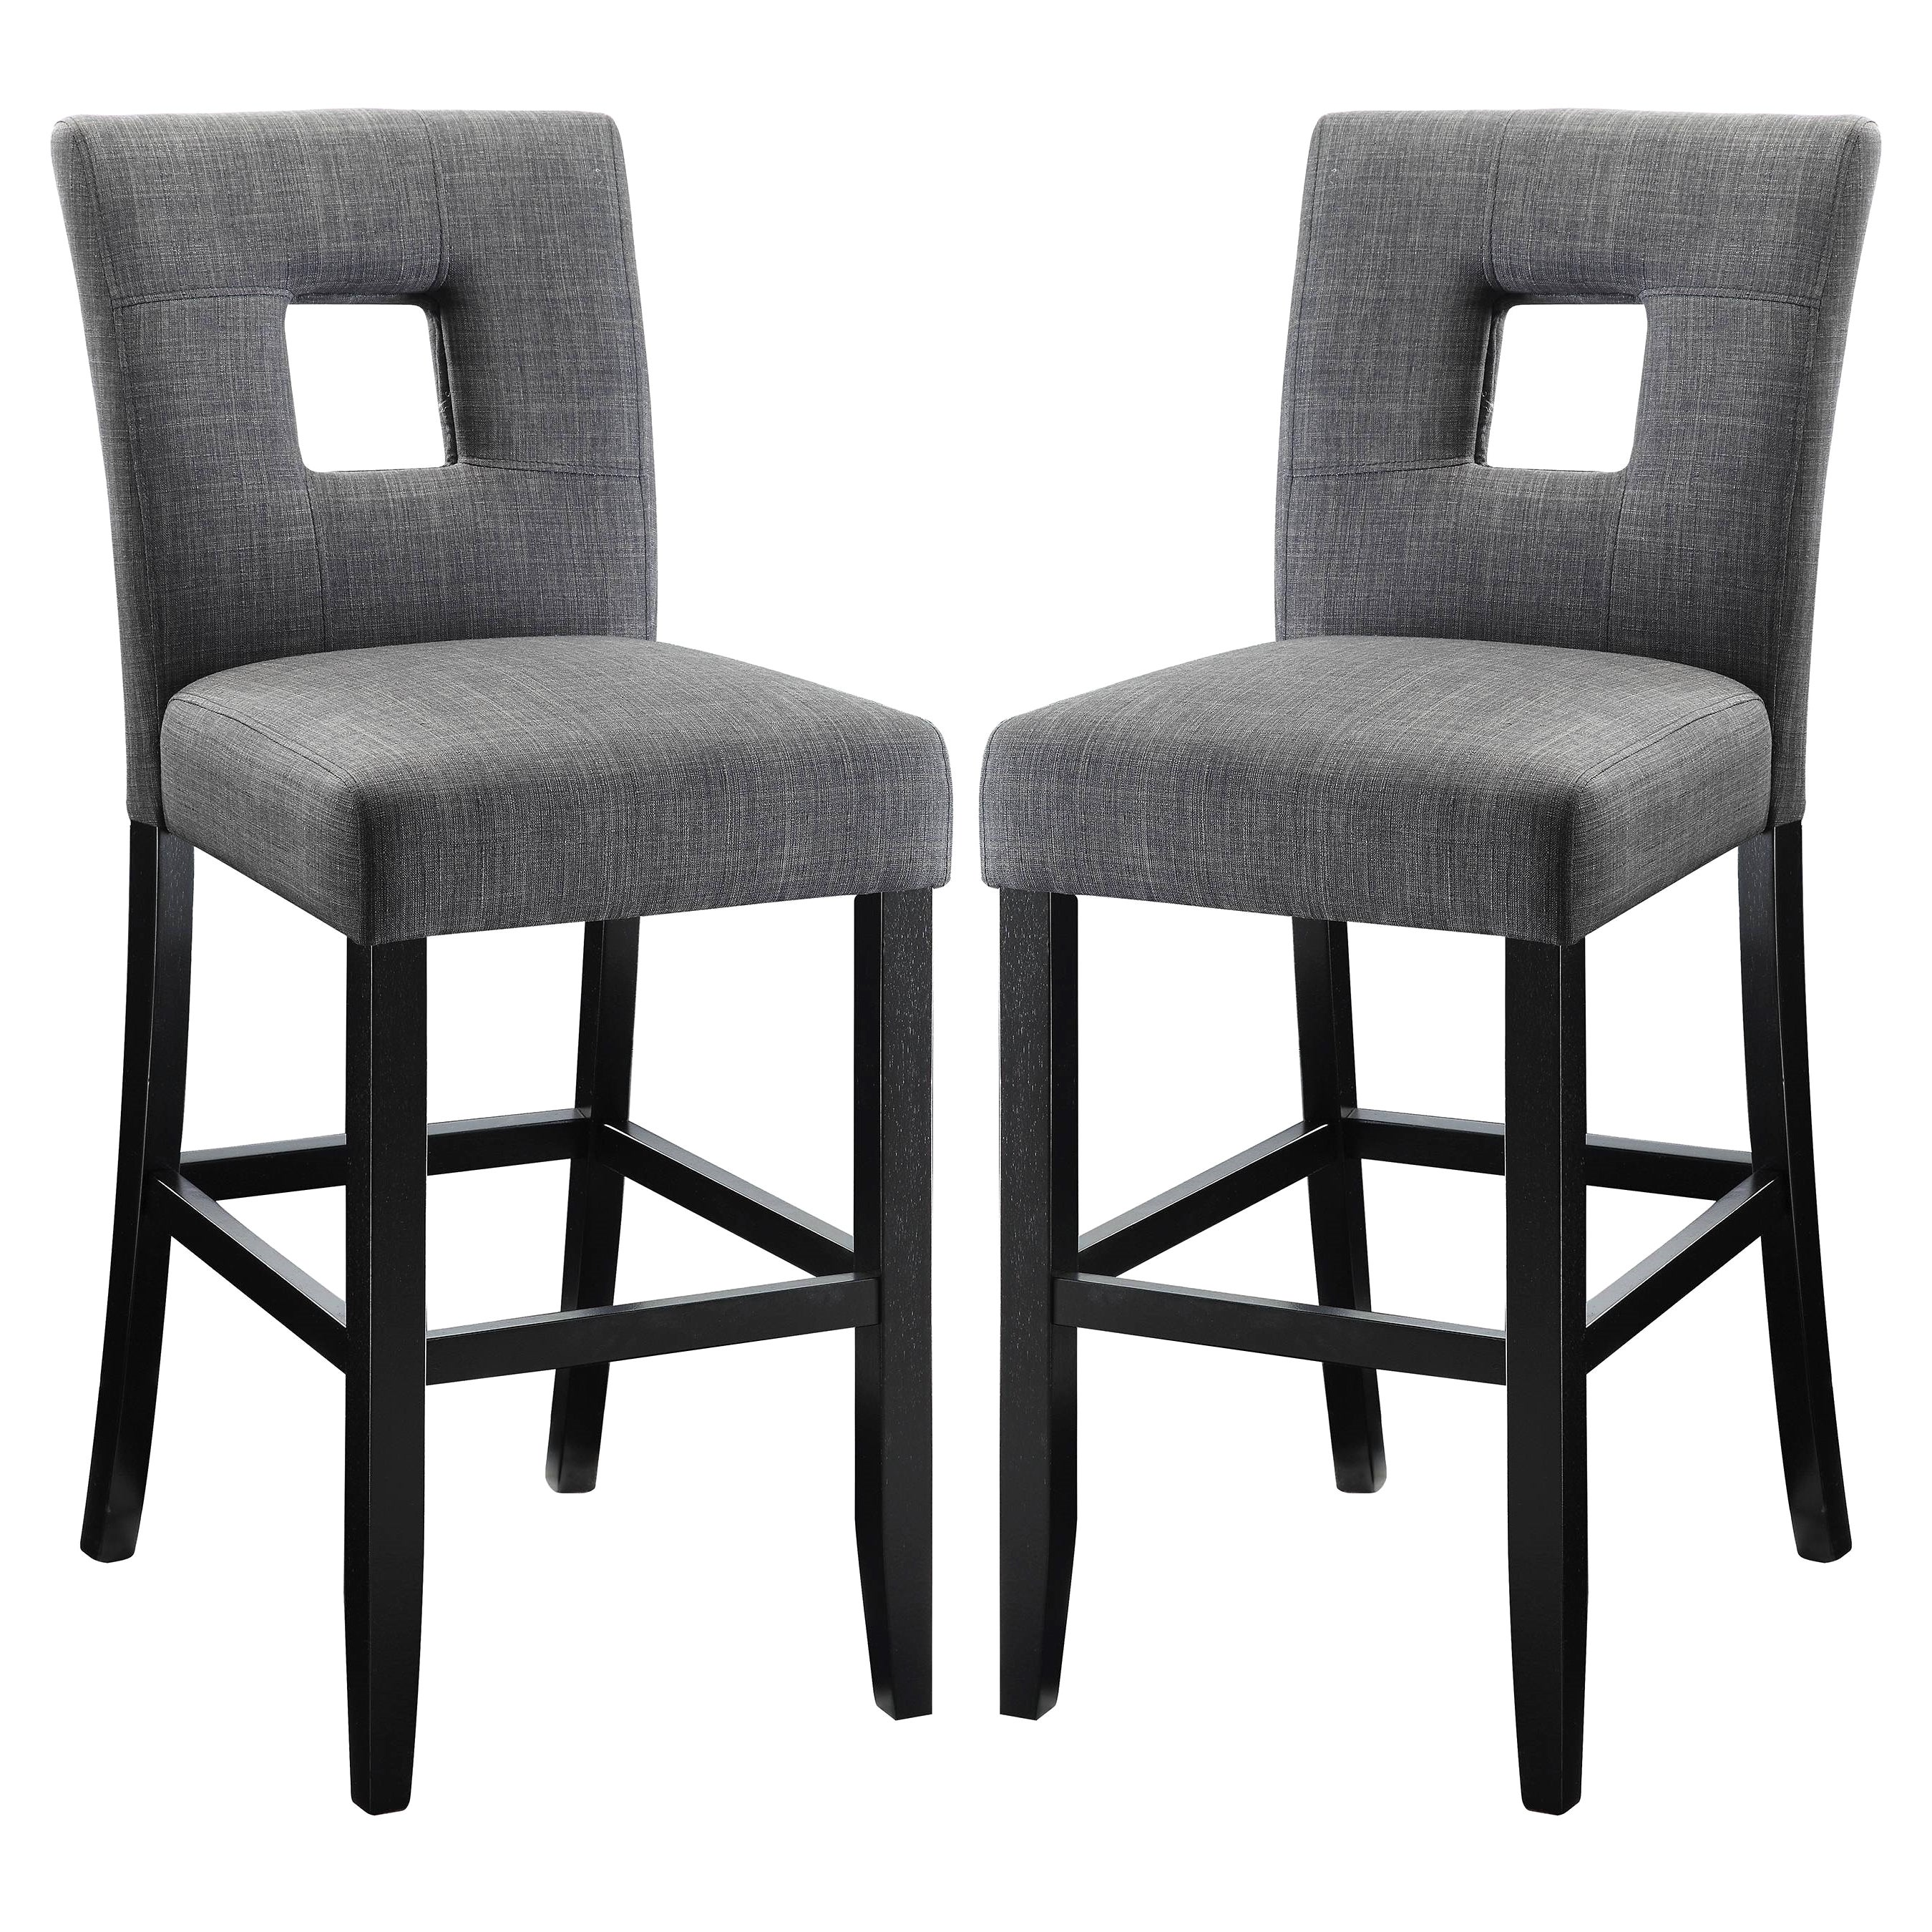 pair stool grey soft cutout ol bar hampstead upholstered stools